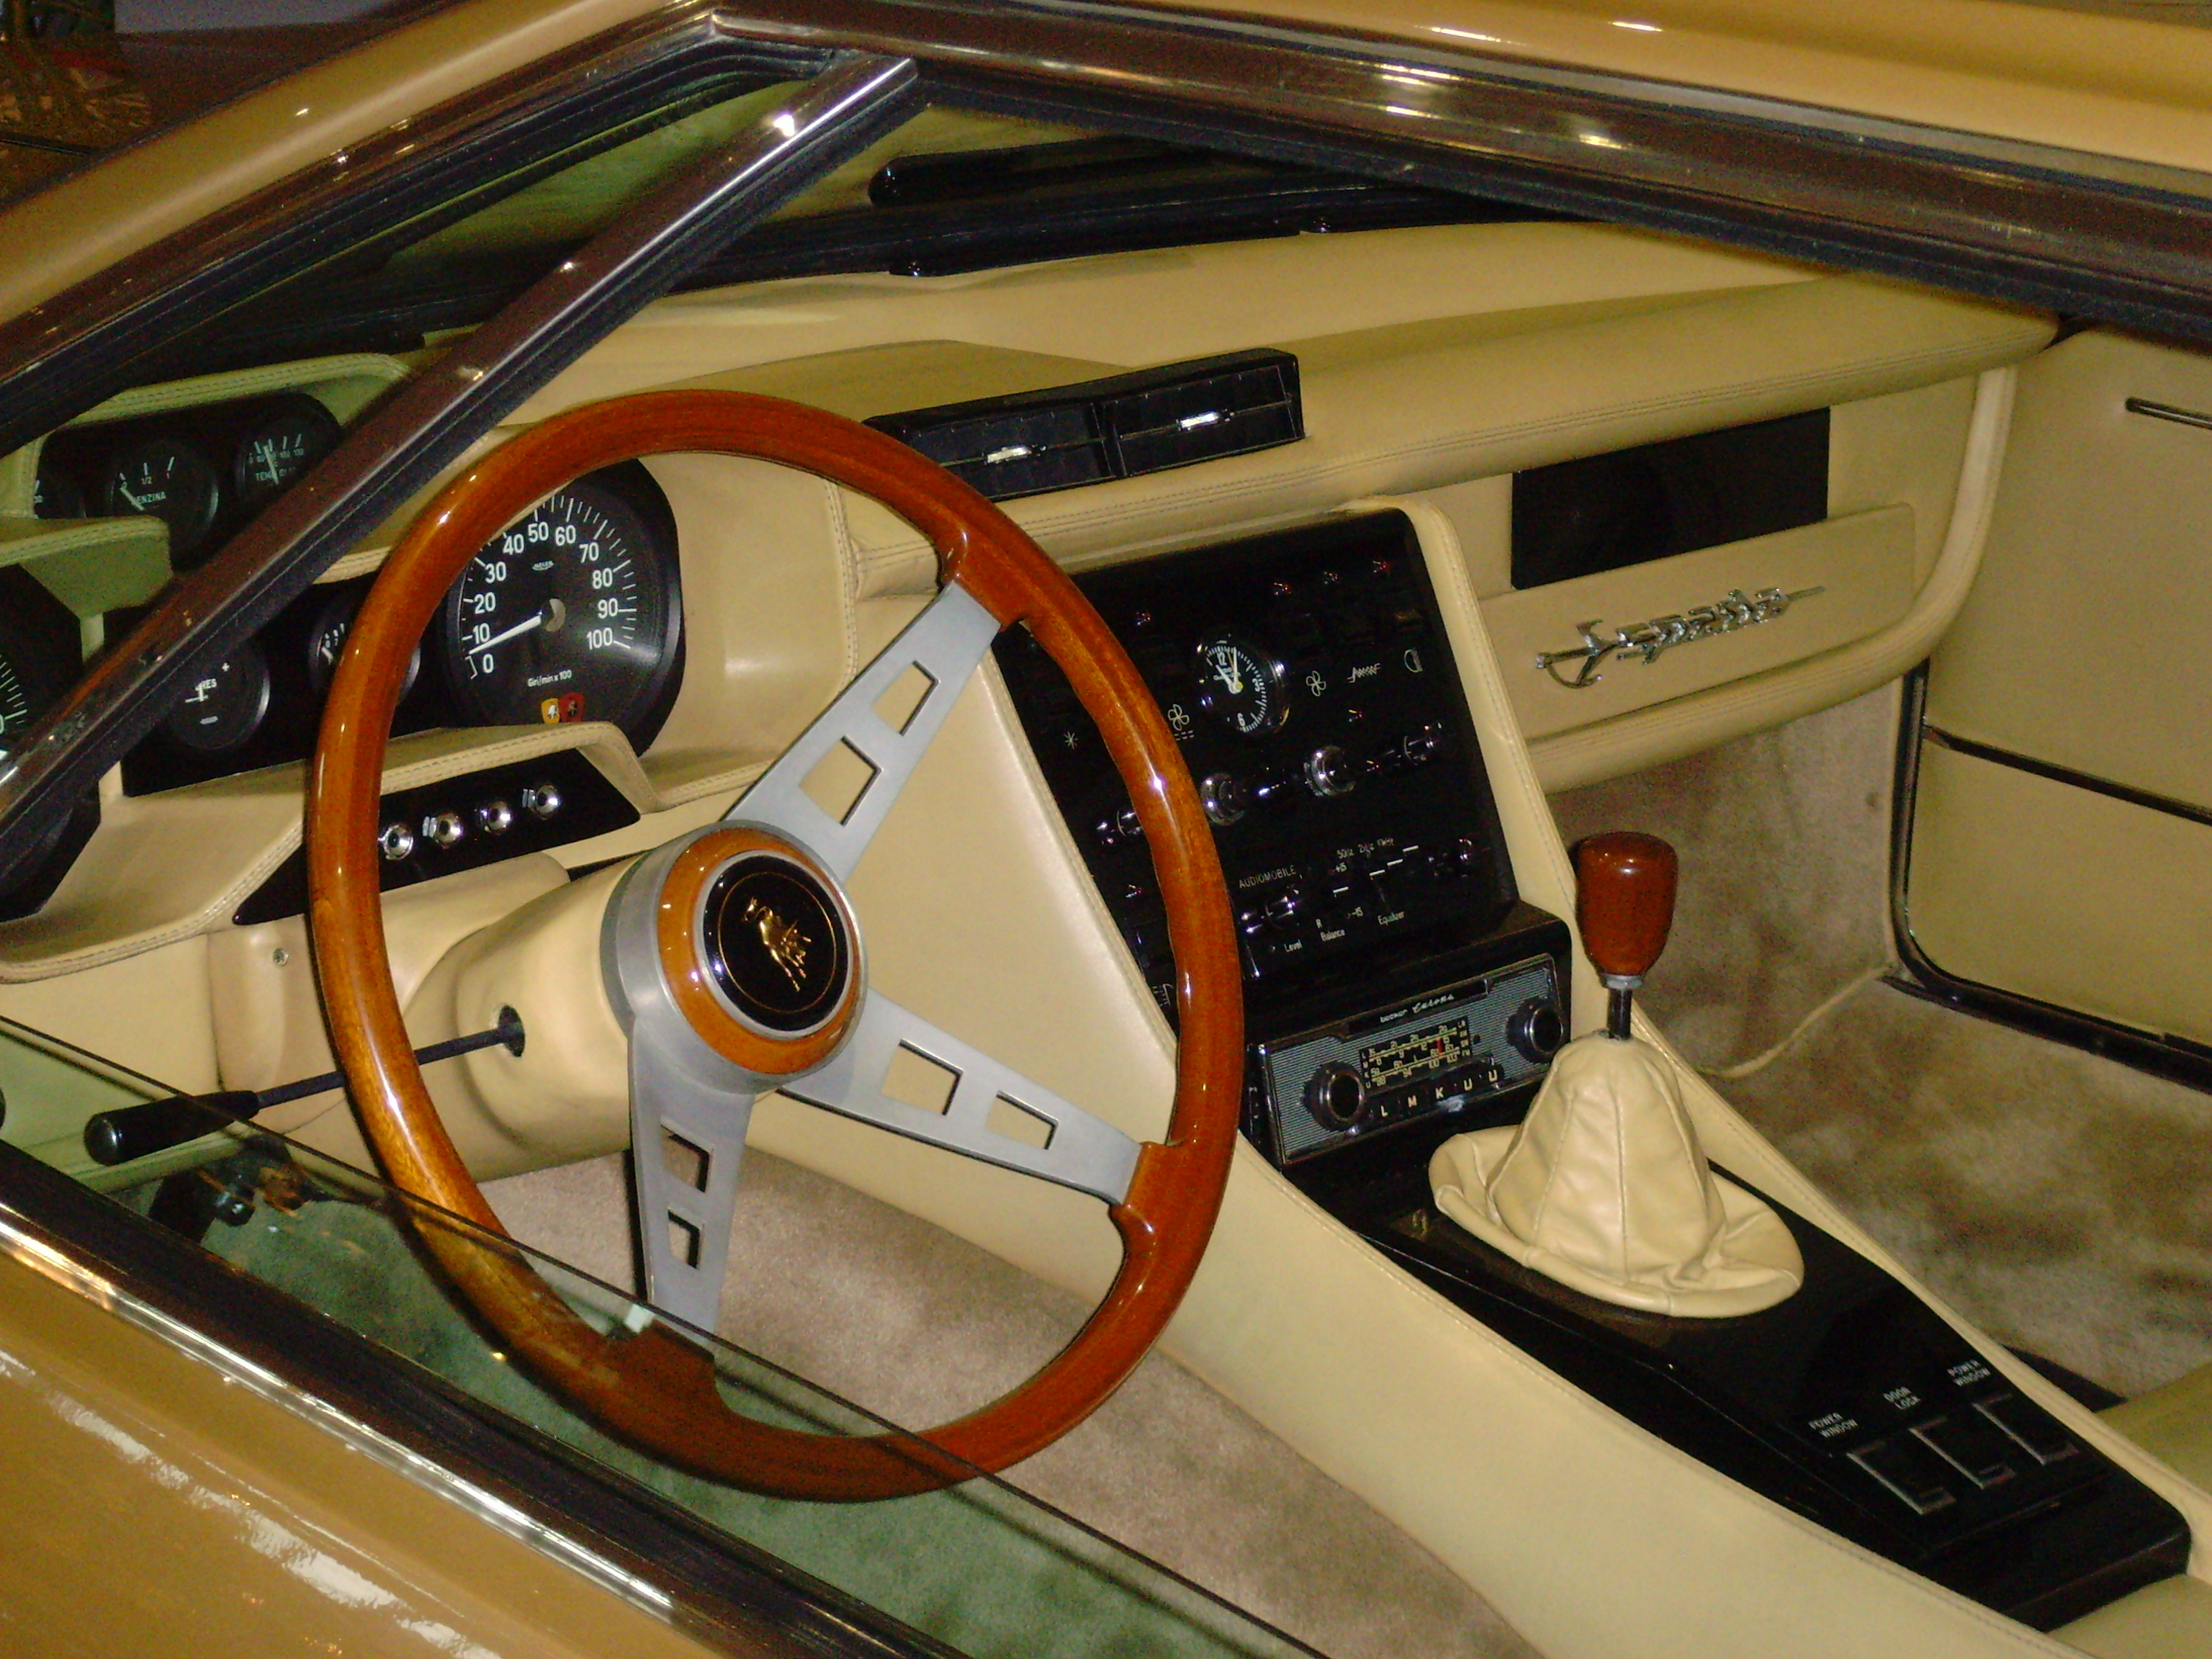 Https Commons Wikimedia Org Wiki File Lamborghini Espada Interior Jpg